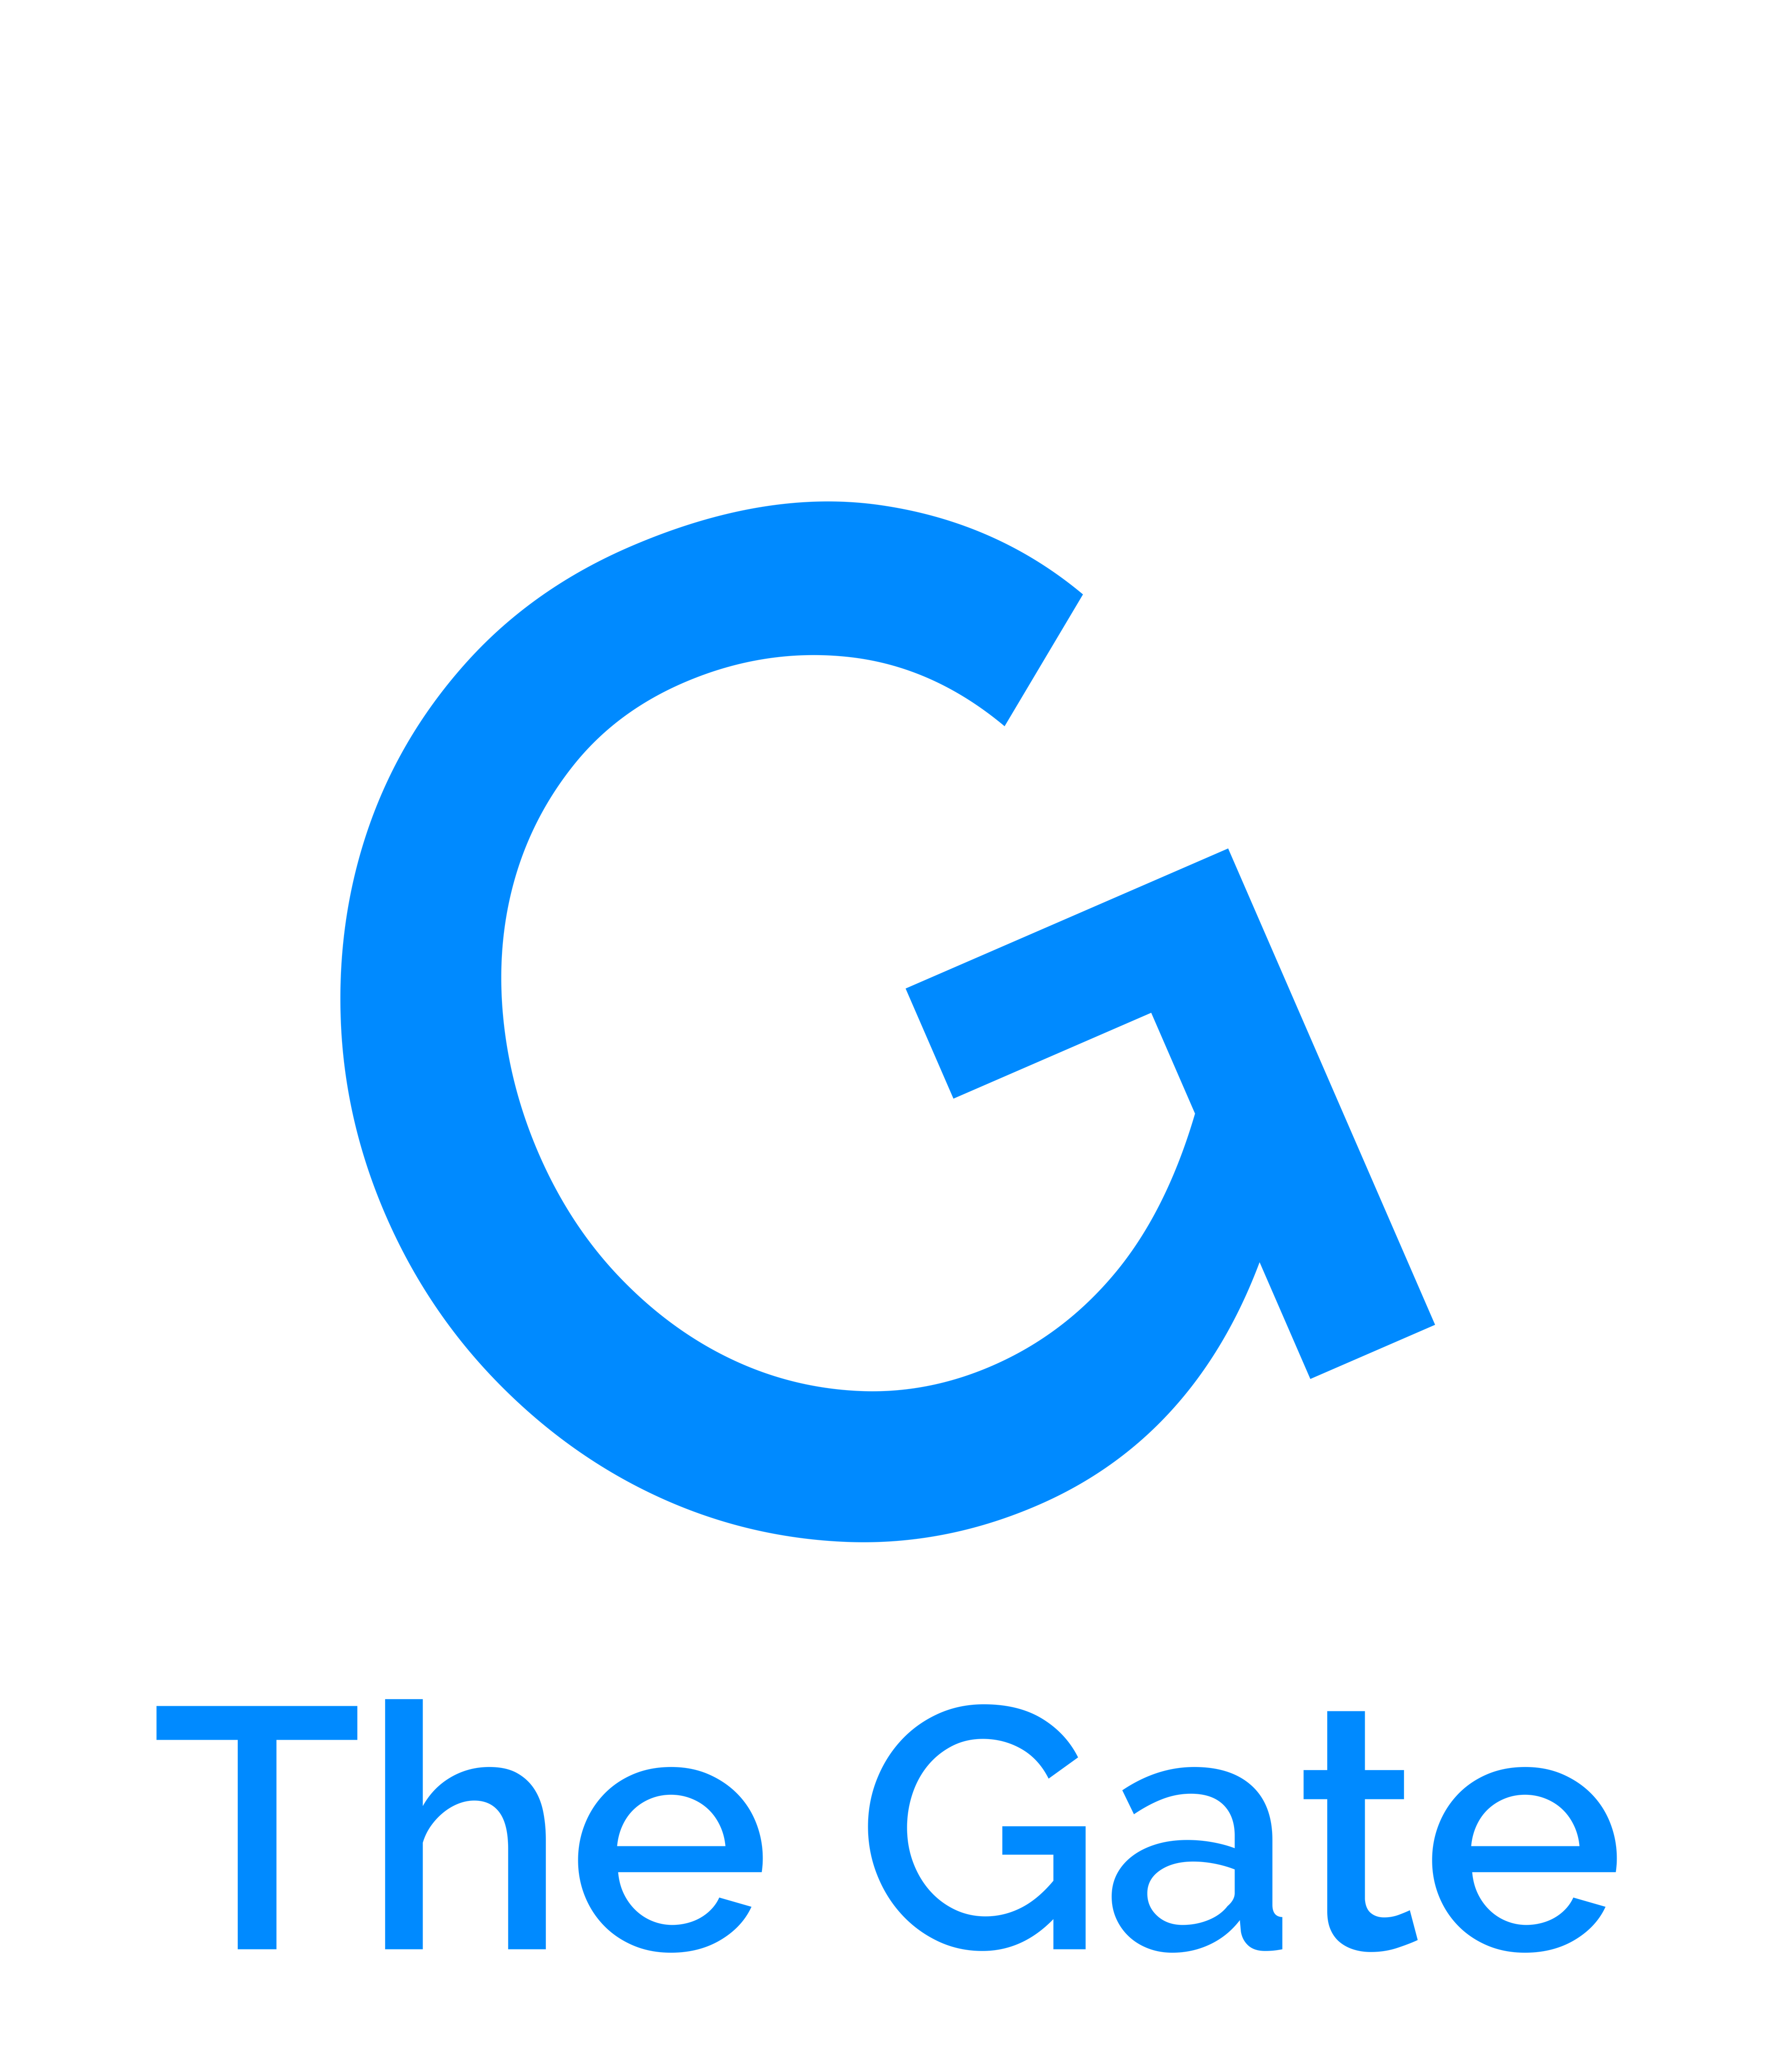 To the . Gate clipart welcome sign